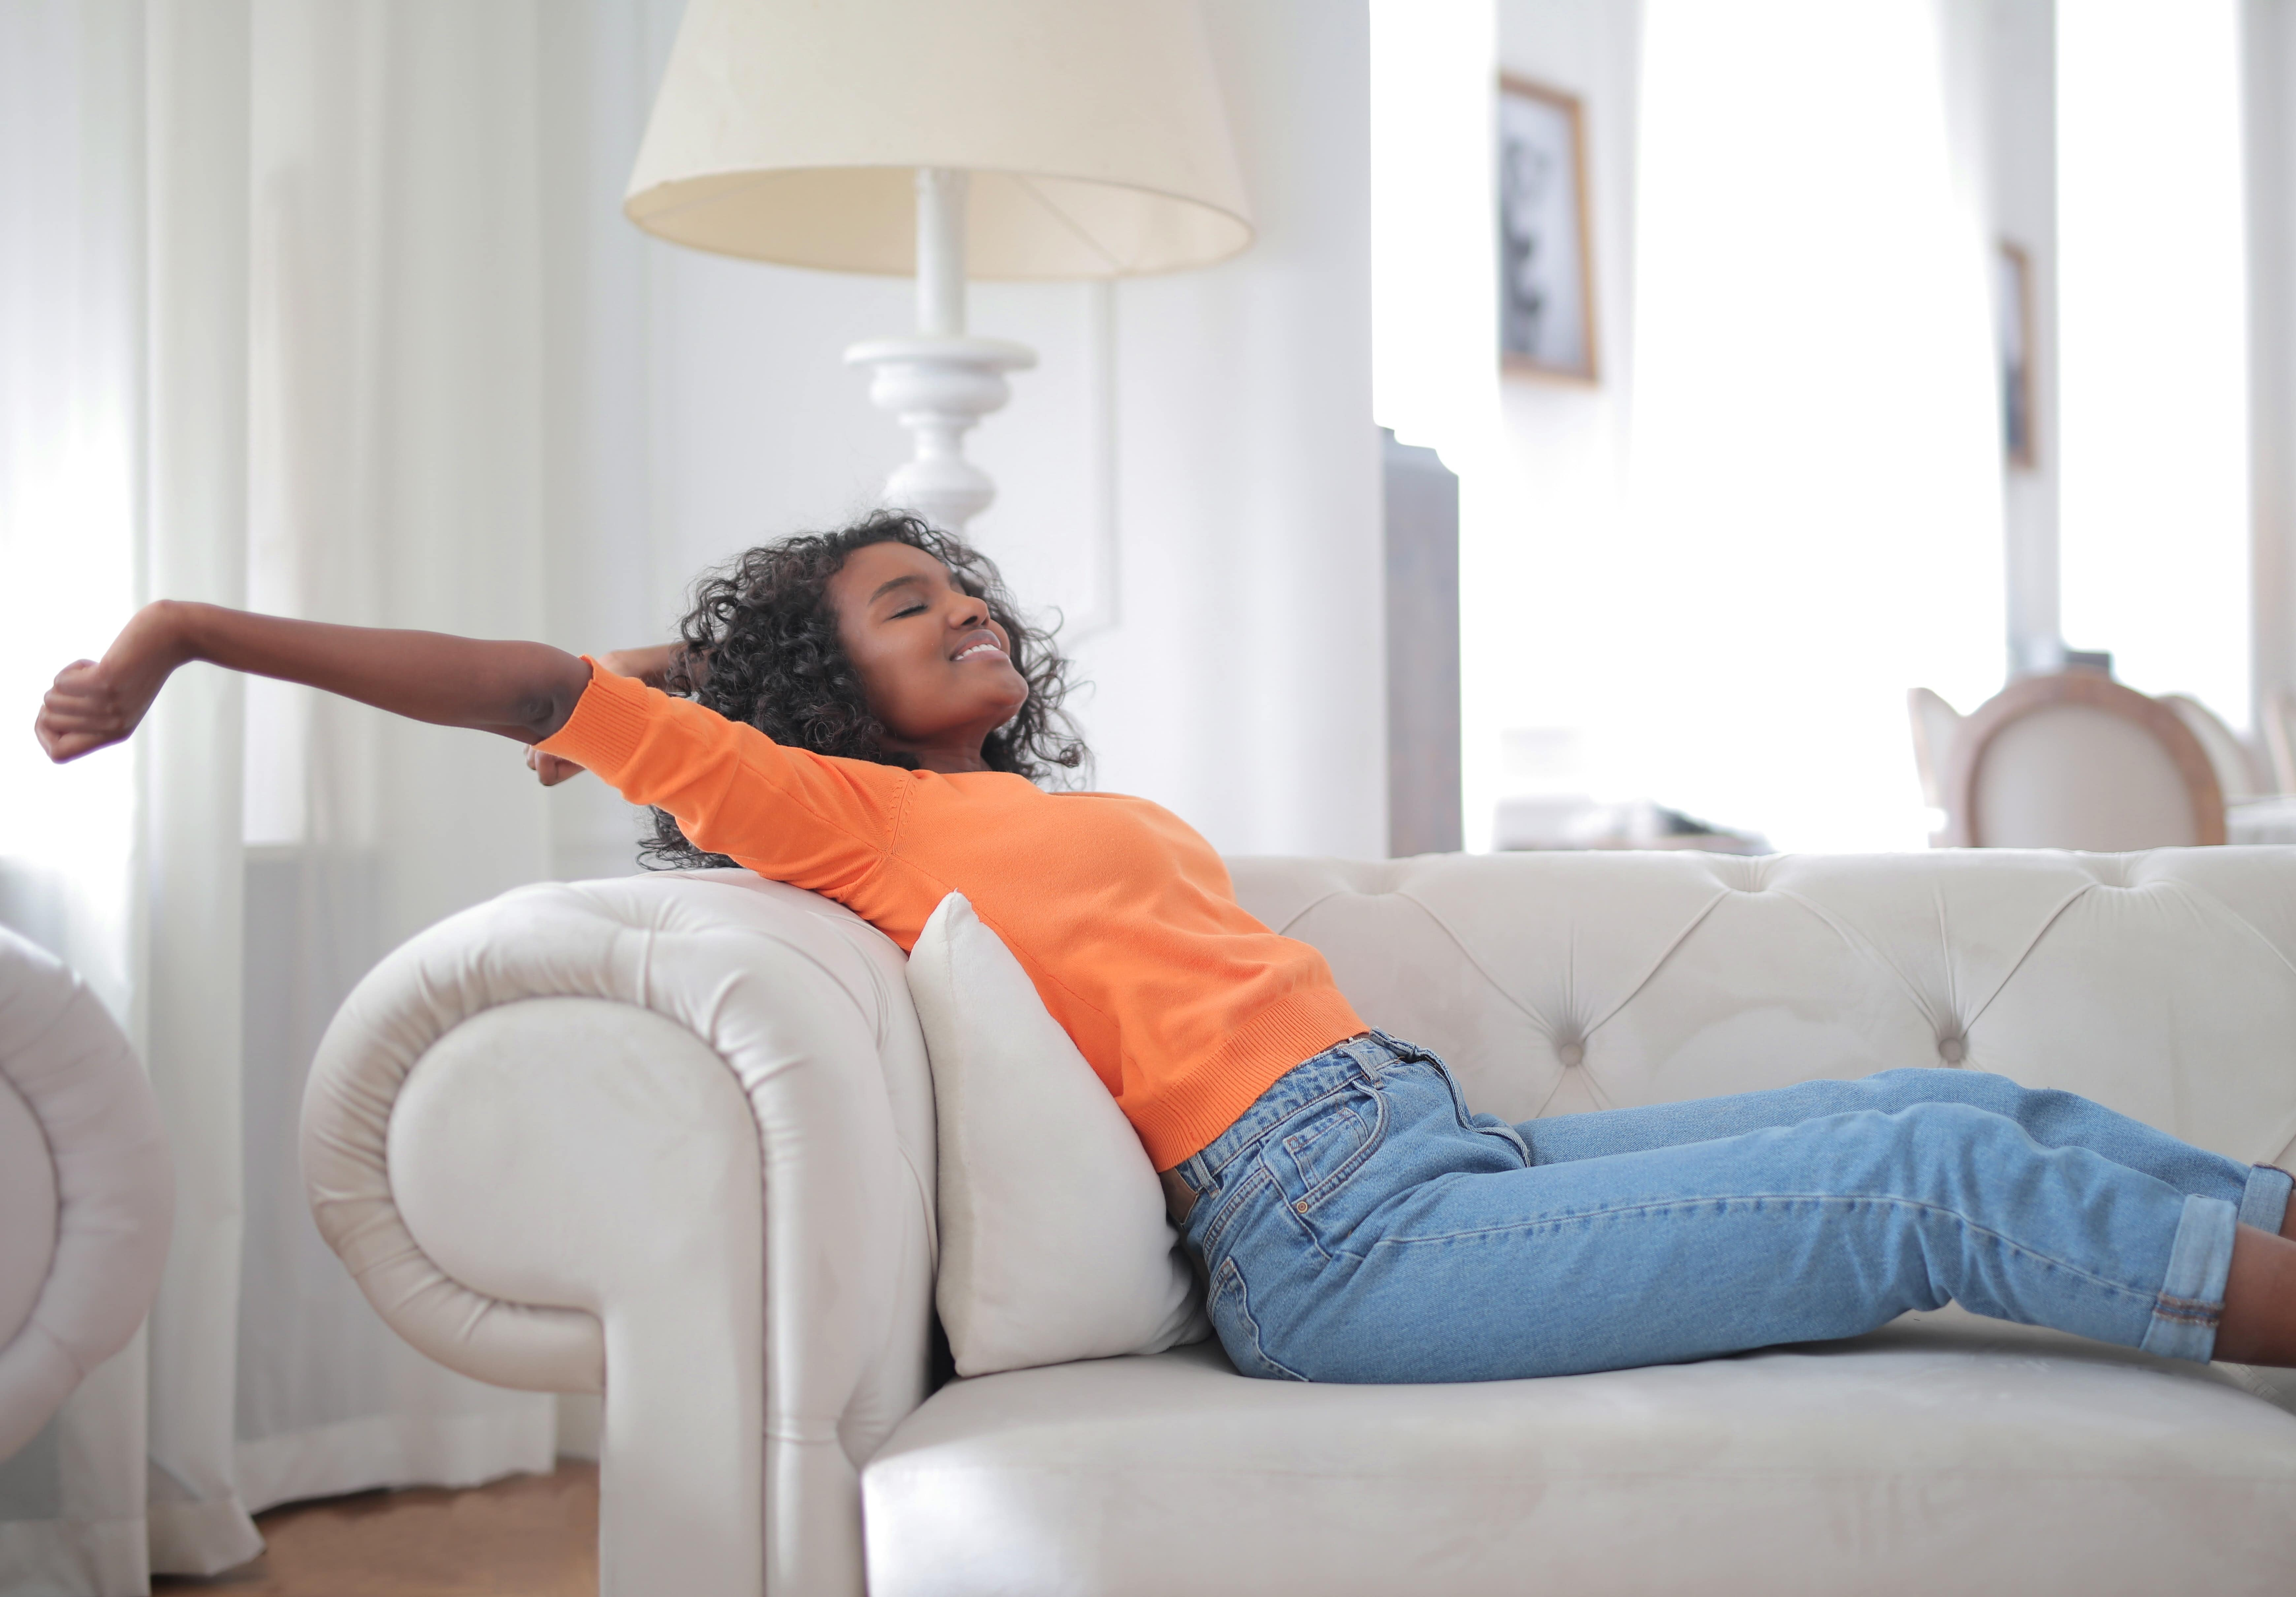 Woman in orange jumper stretching on sofa, she looks relaxed and happy.